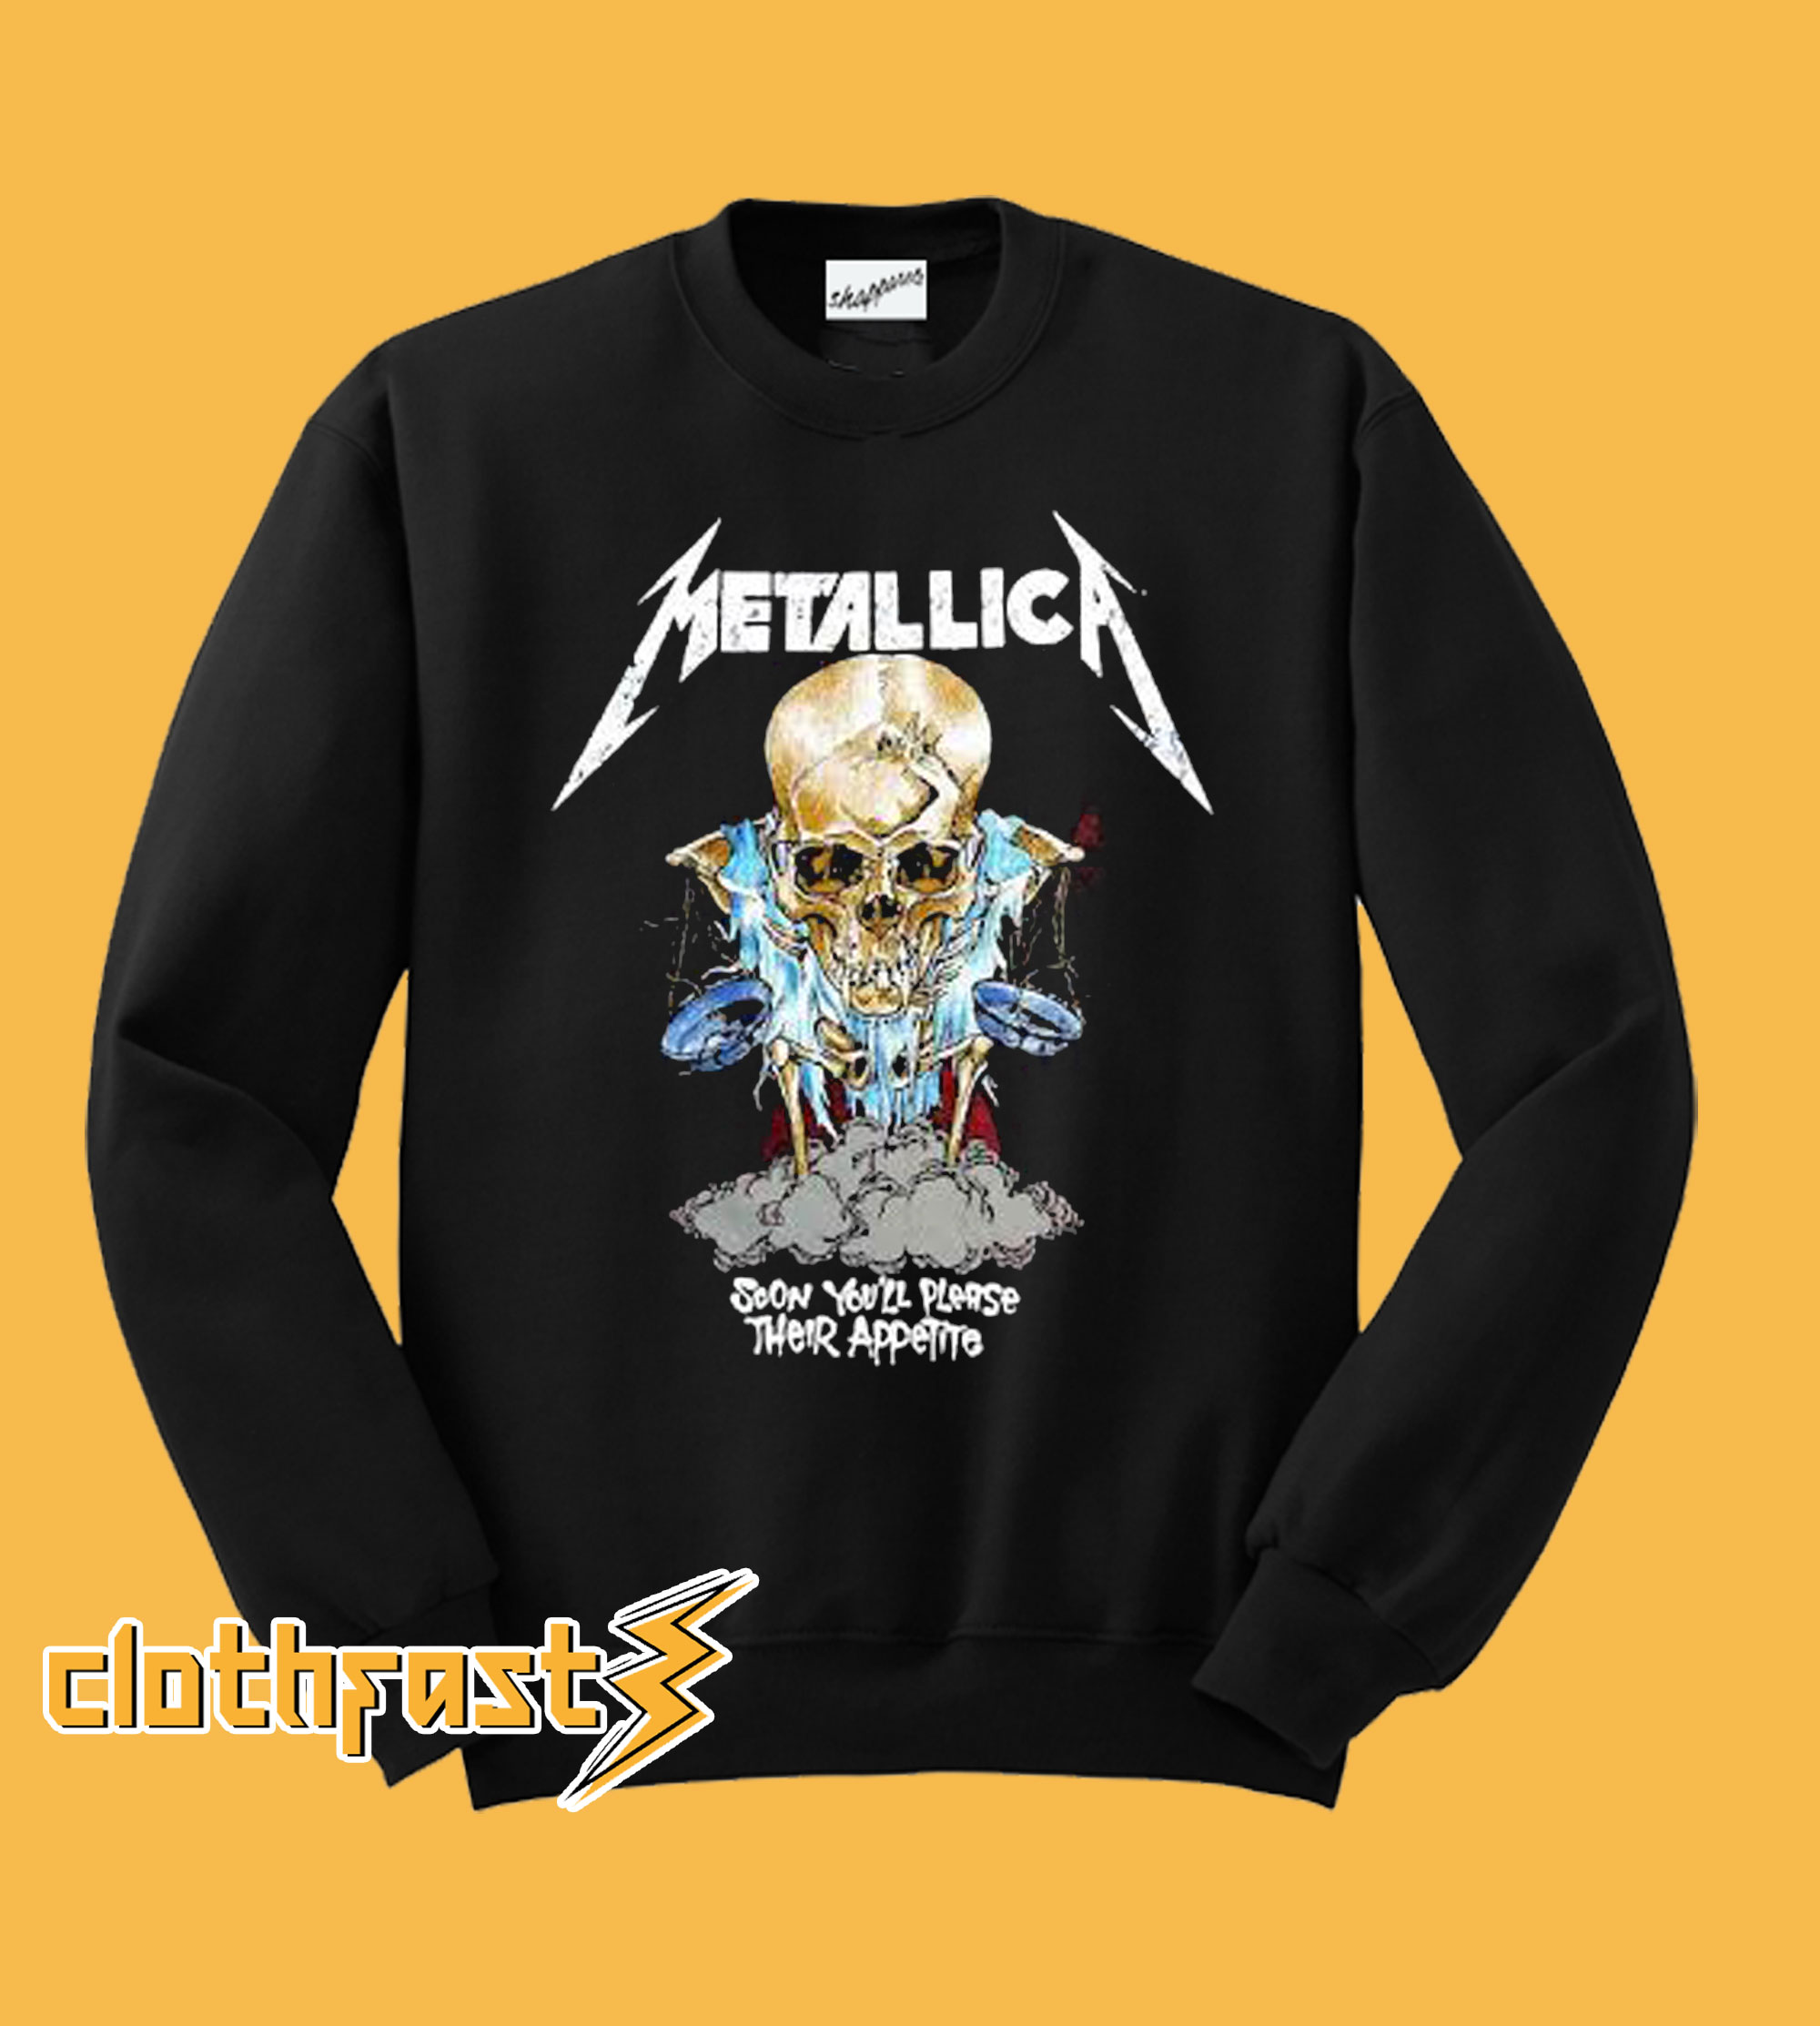 metallica soon you'll please their appetite sweatshirt